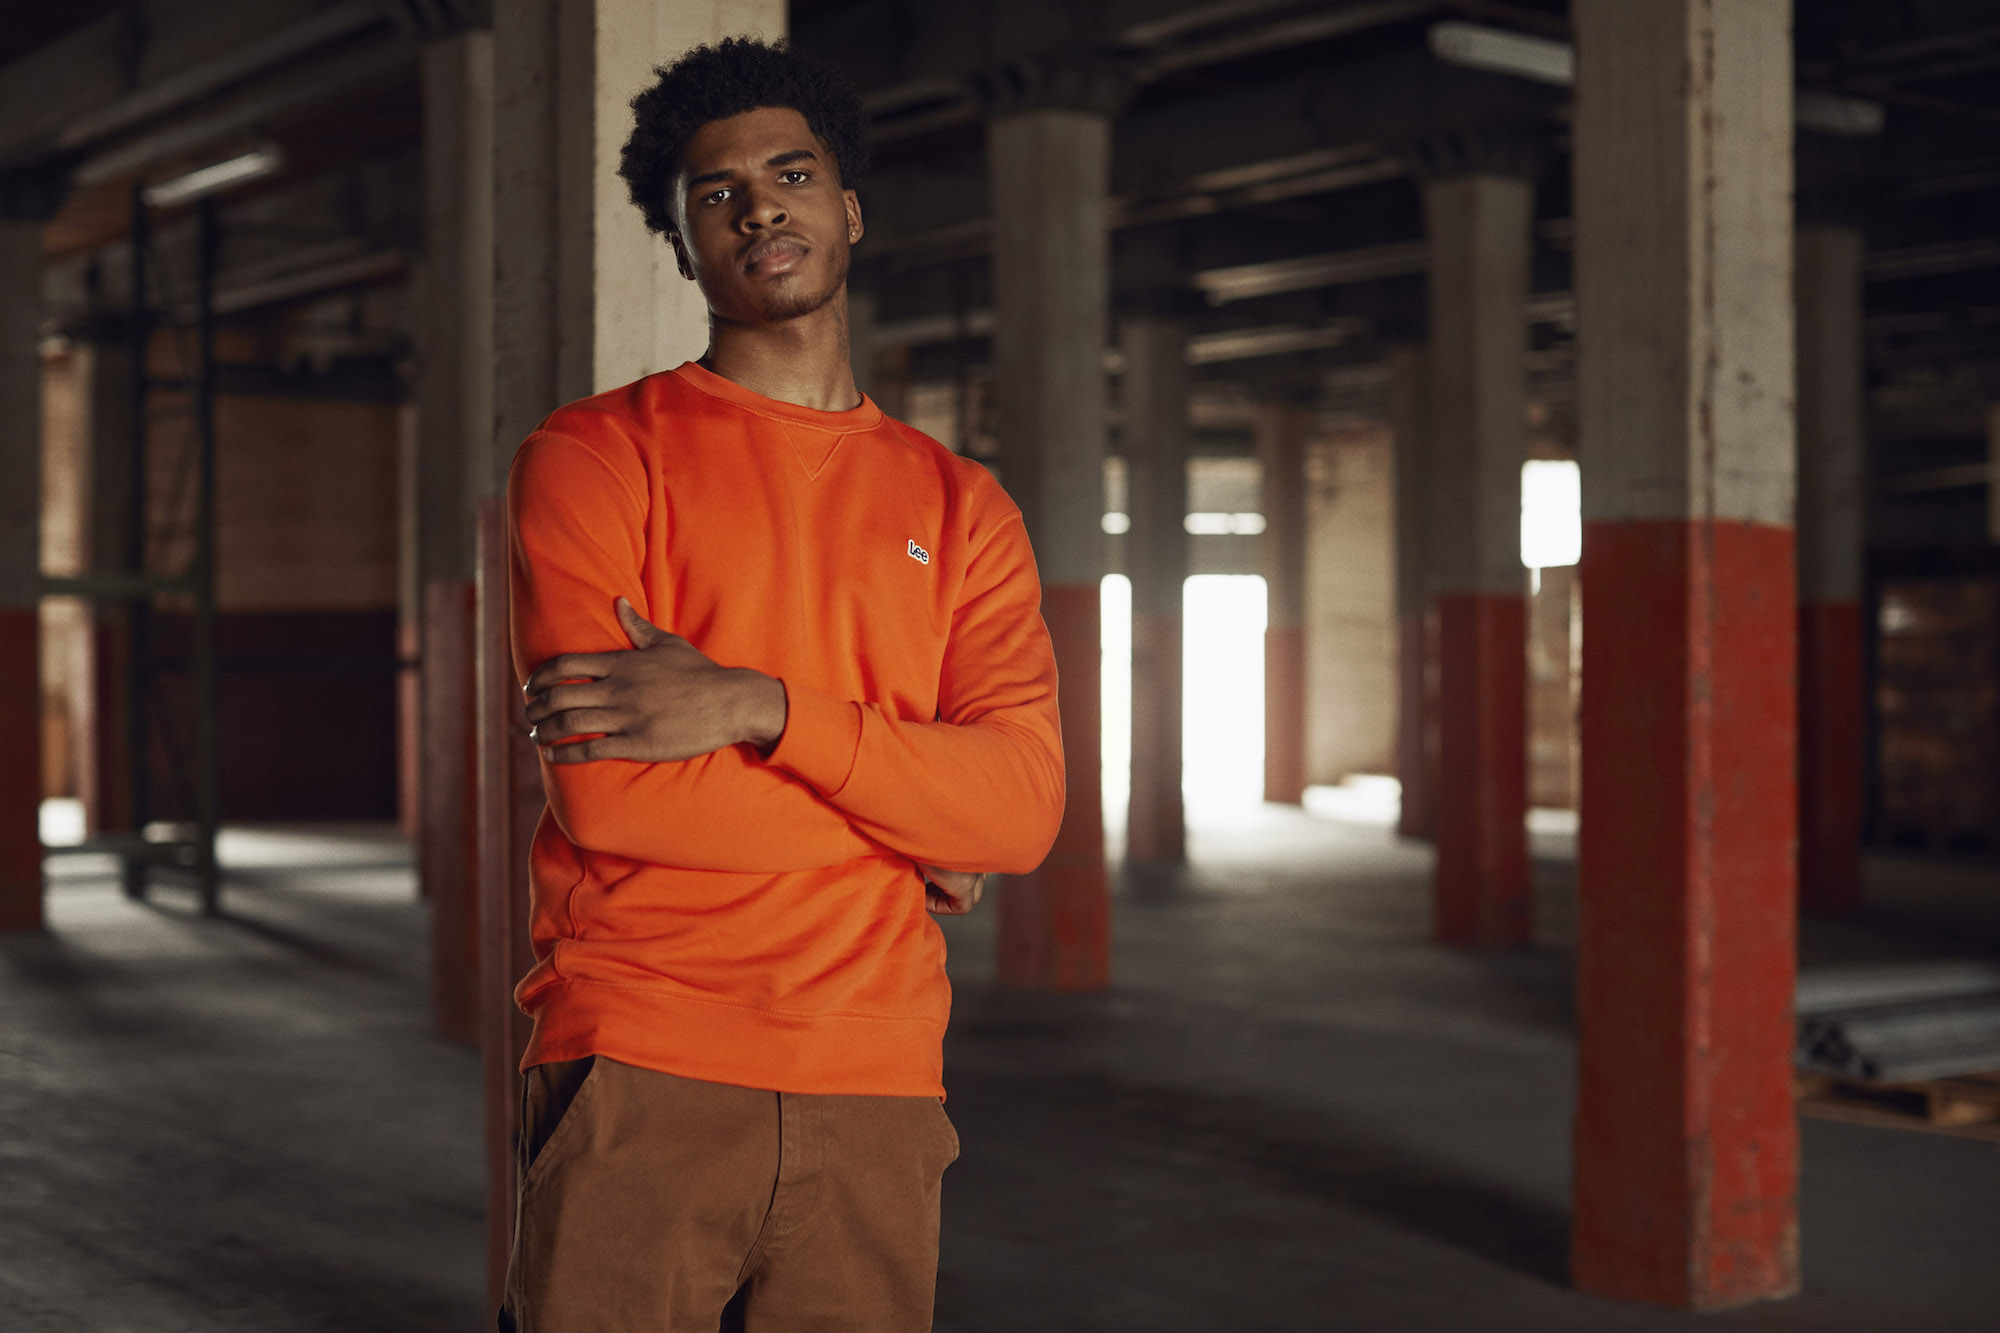 Lee Jeans campaign Created in Kansas orange top